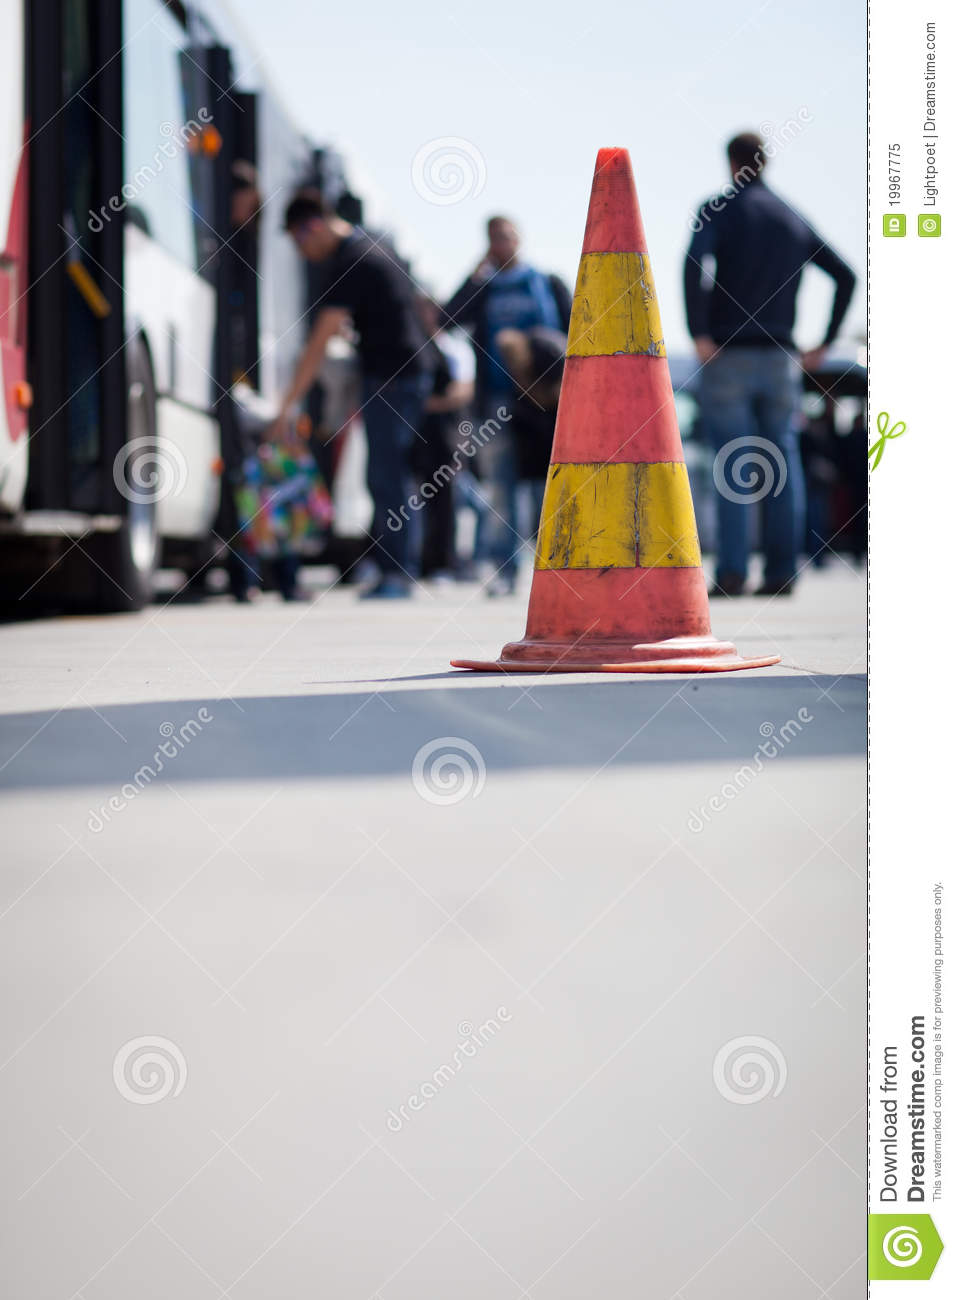 Safety Cone At The Aerodrome Of An Airport Royalty Free Stock Photo